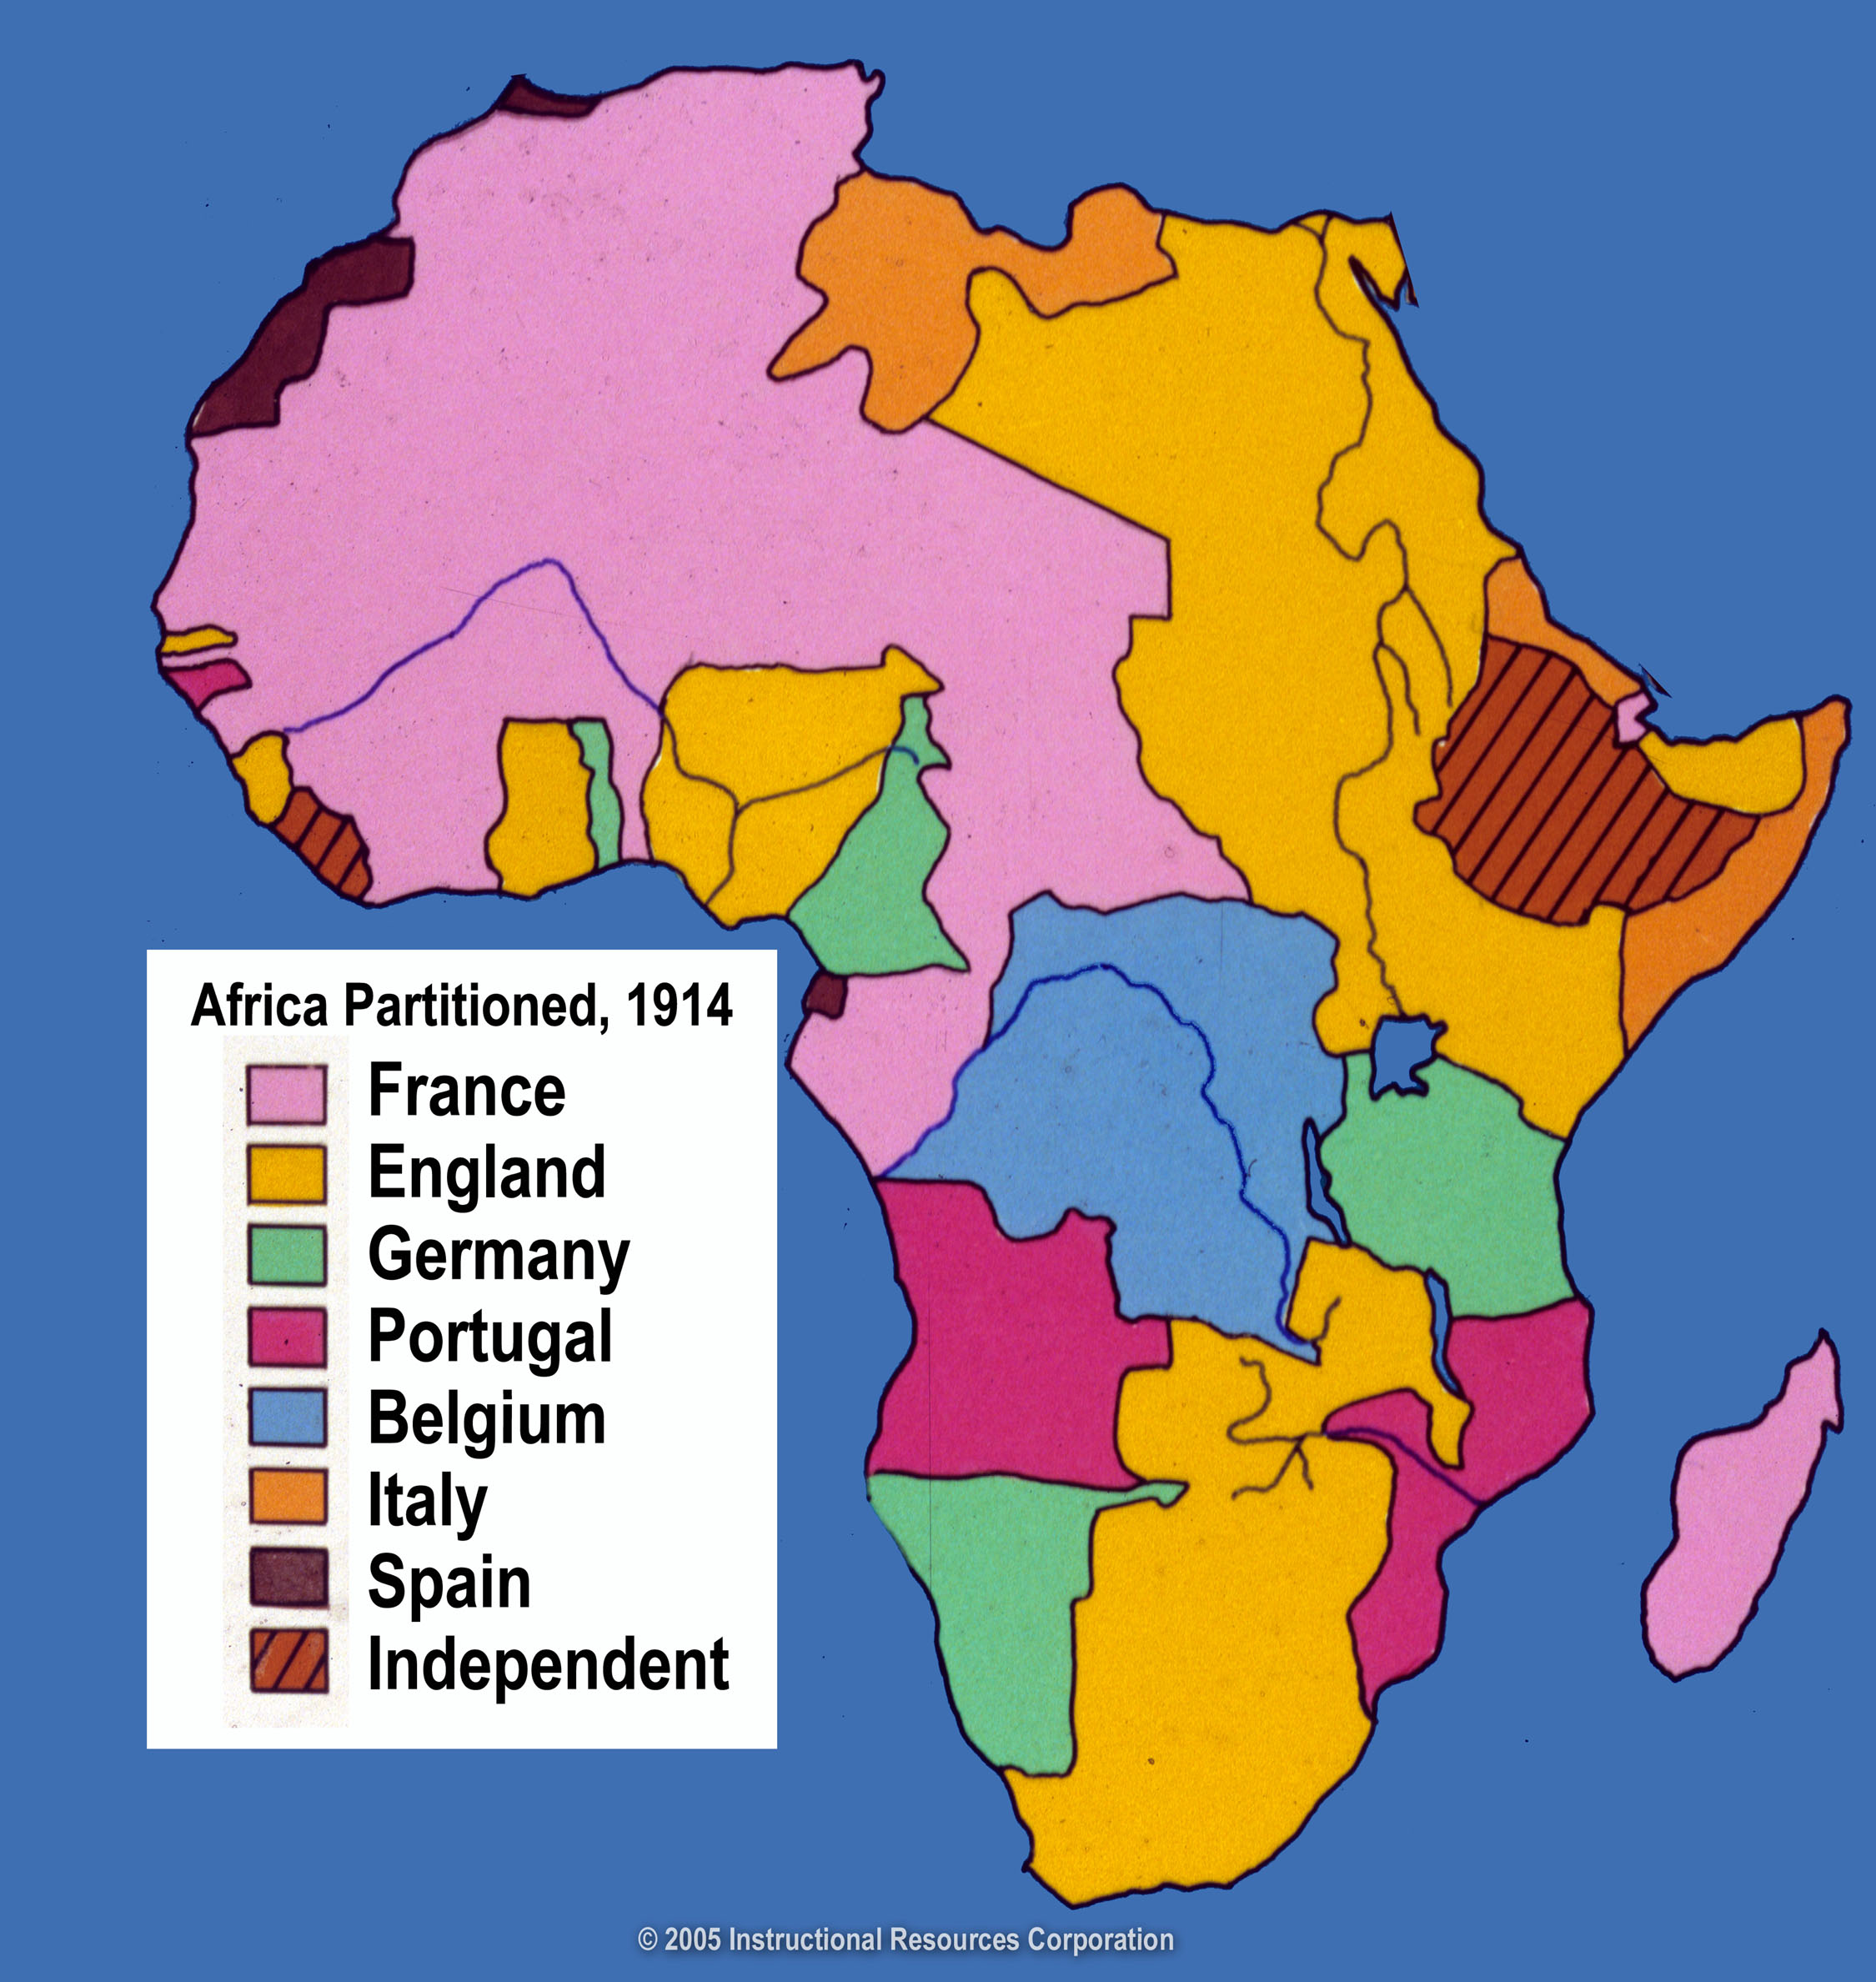 Map Of Africa During Imperialism.European Imperialism Africa Map Free Image